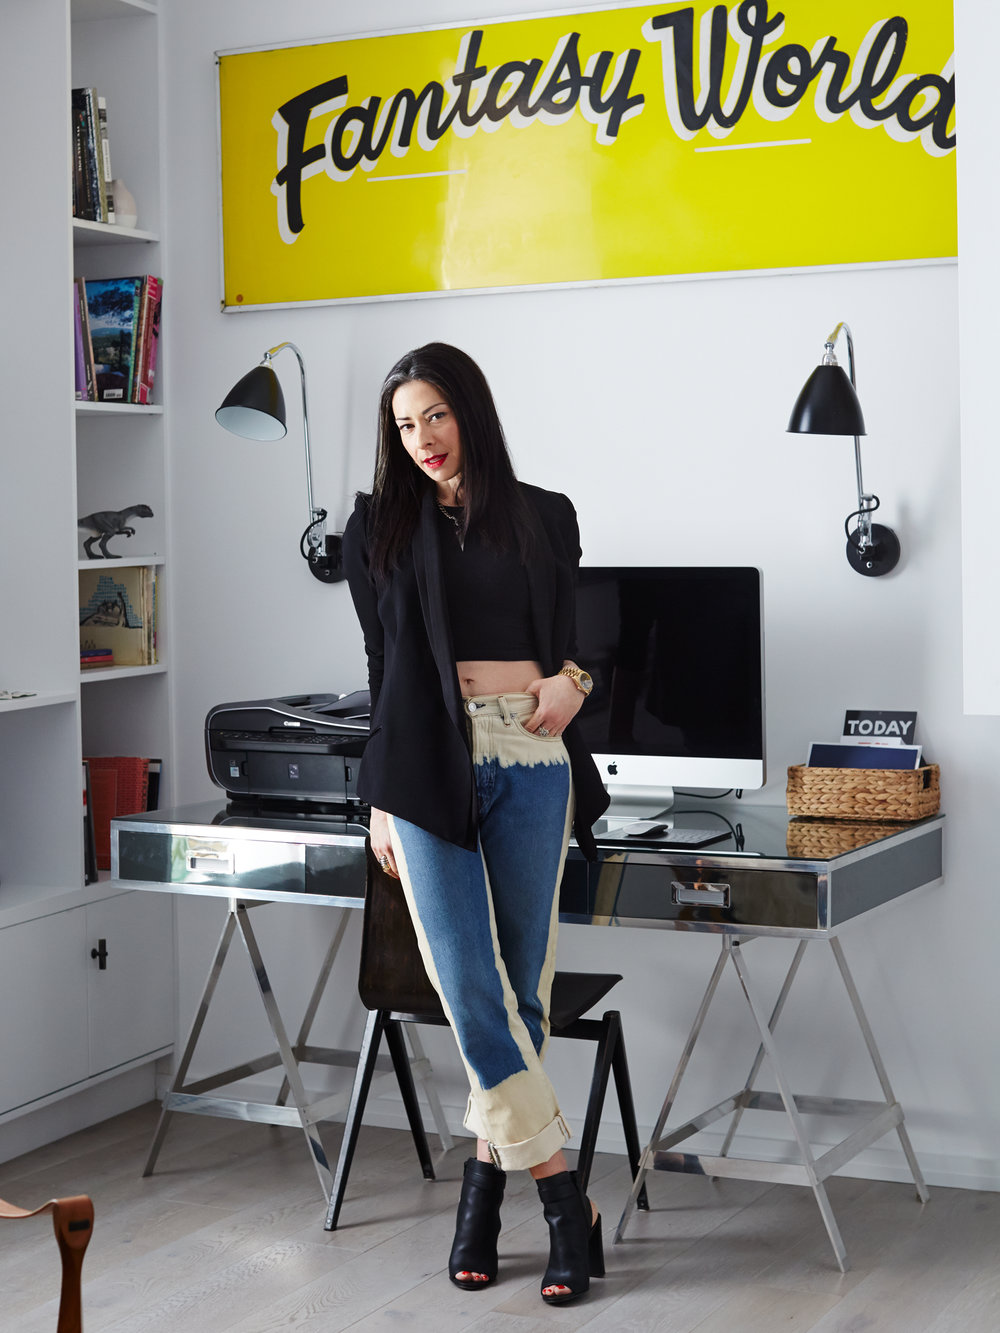 StacyLondon02_128.jpg